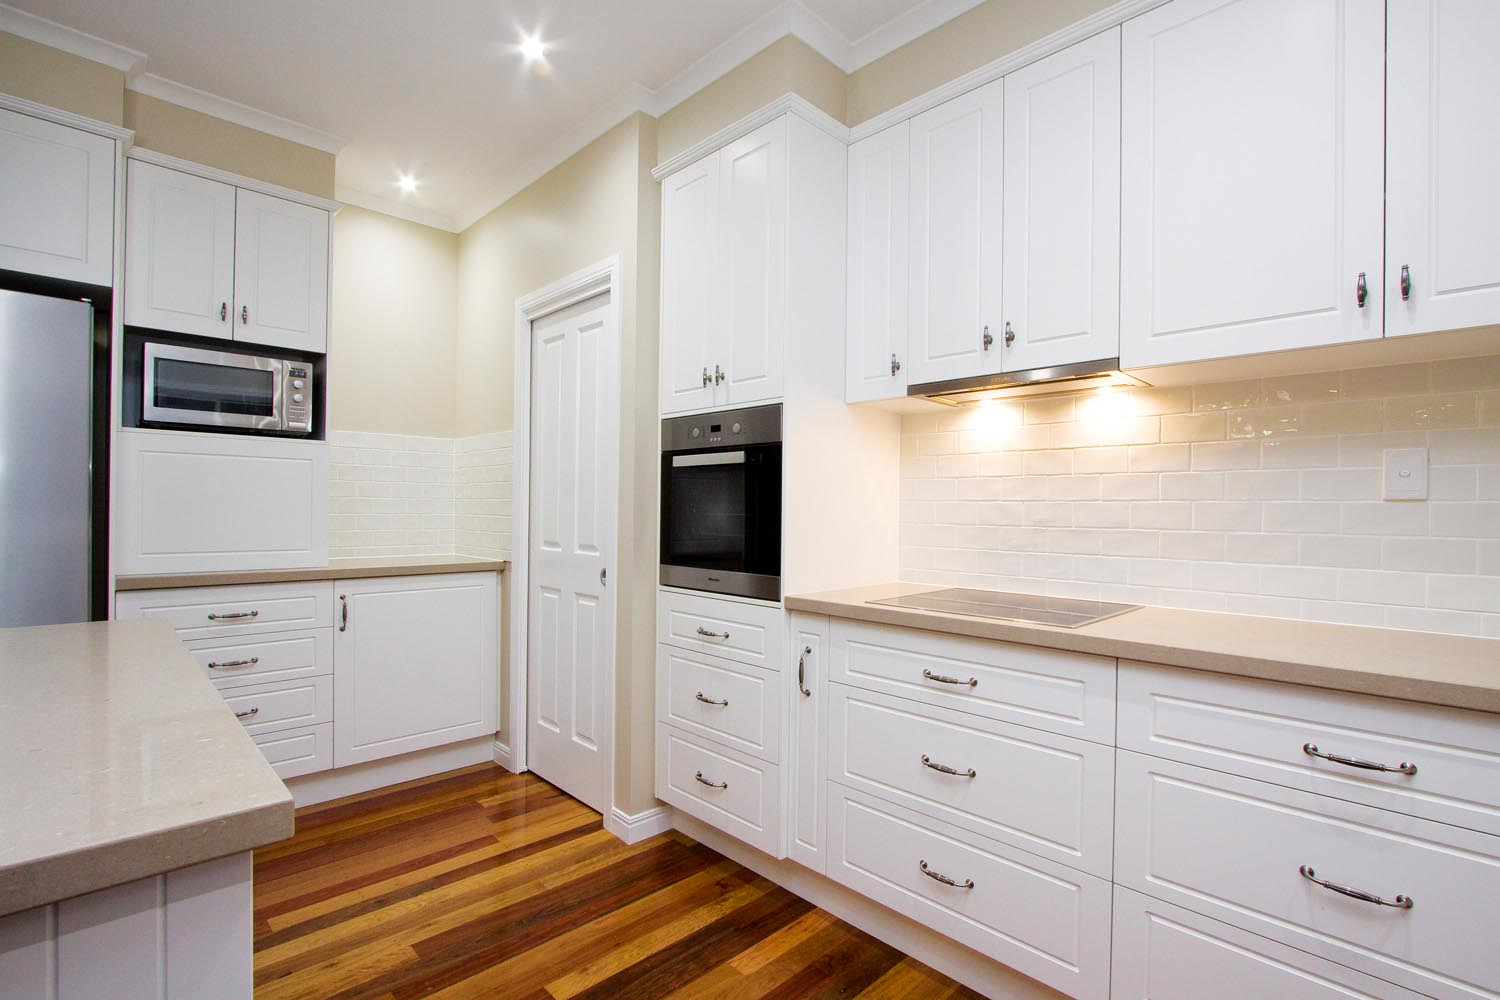 More for less: a classic Queenslander home - 3/4 kitchen view